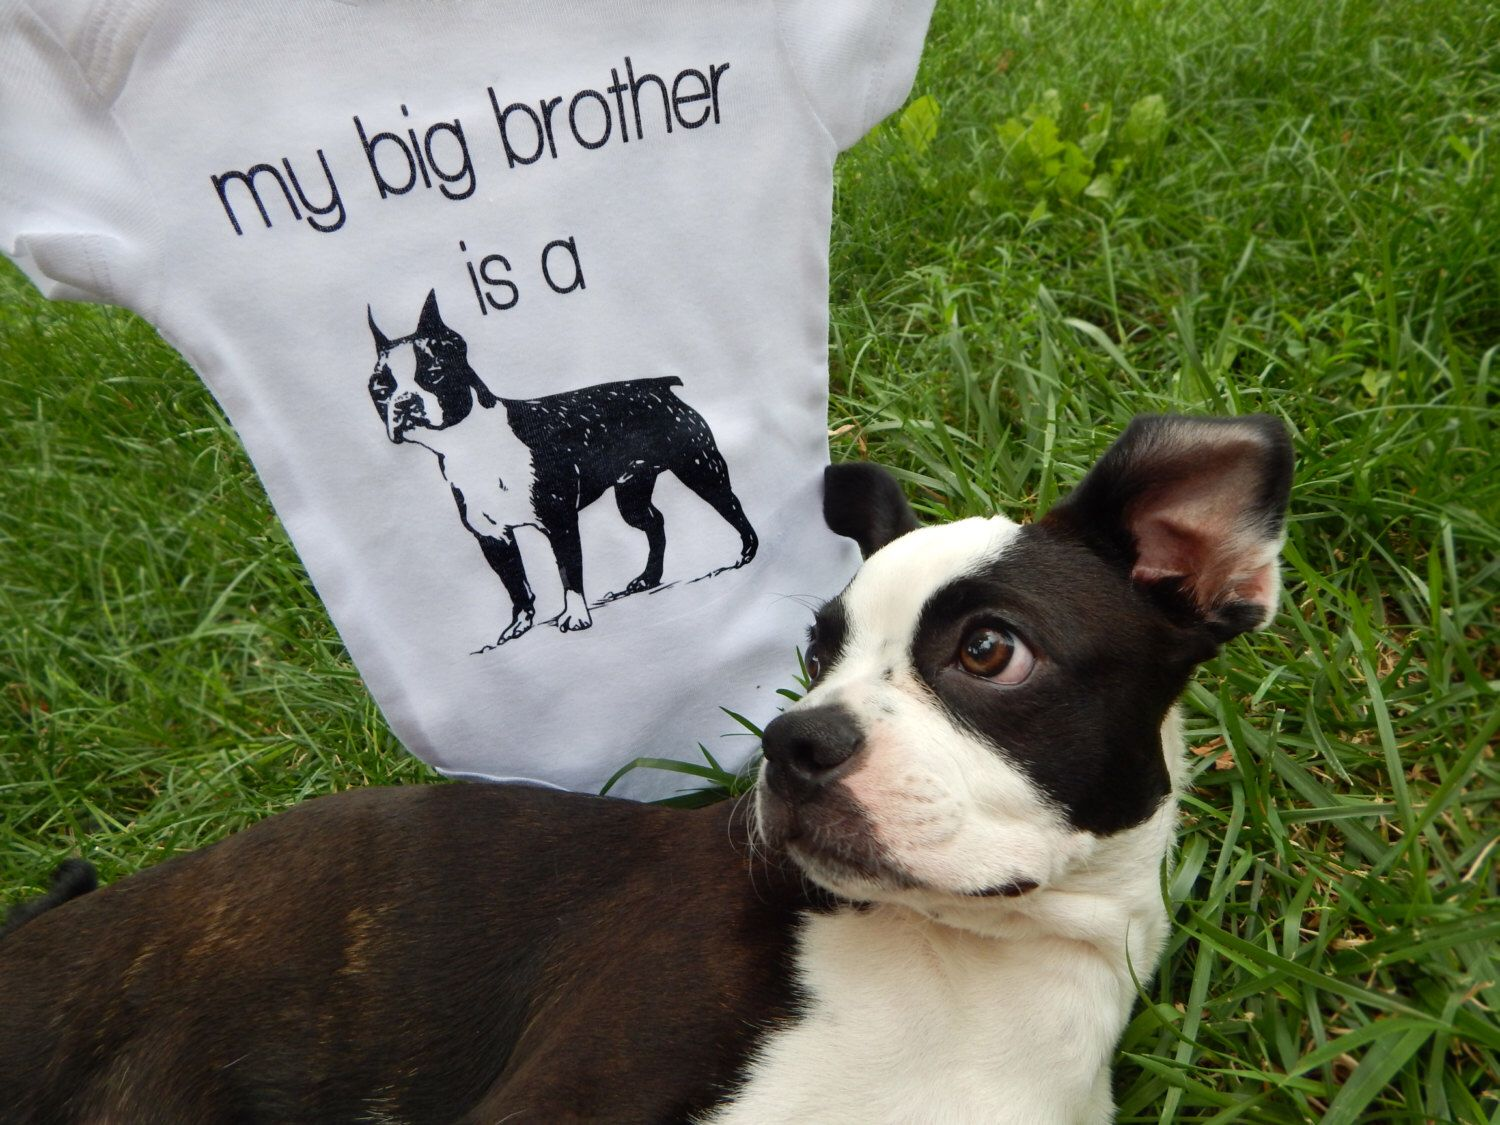 Boston Terrier Baby Clothes, Big Brother Dog Shirt, Boston Terrier Gifts, Dog Big Brother Shirt, Dog Baby Clothes, Baby Girl, Baby Boy by EmeeJoCo on Etsy https://www.etsy.com/listing/194348351/boston-terrier-baby-clothes-big-brother